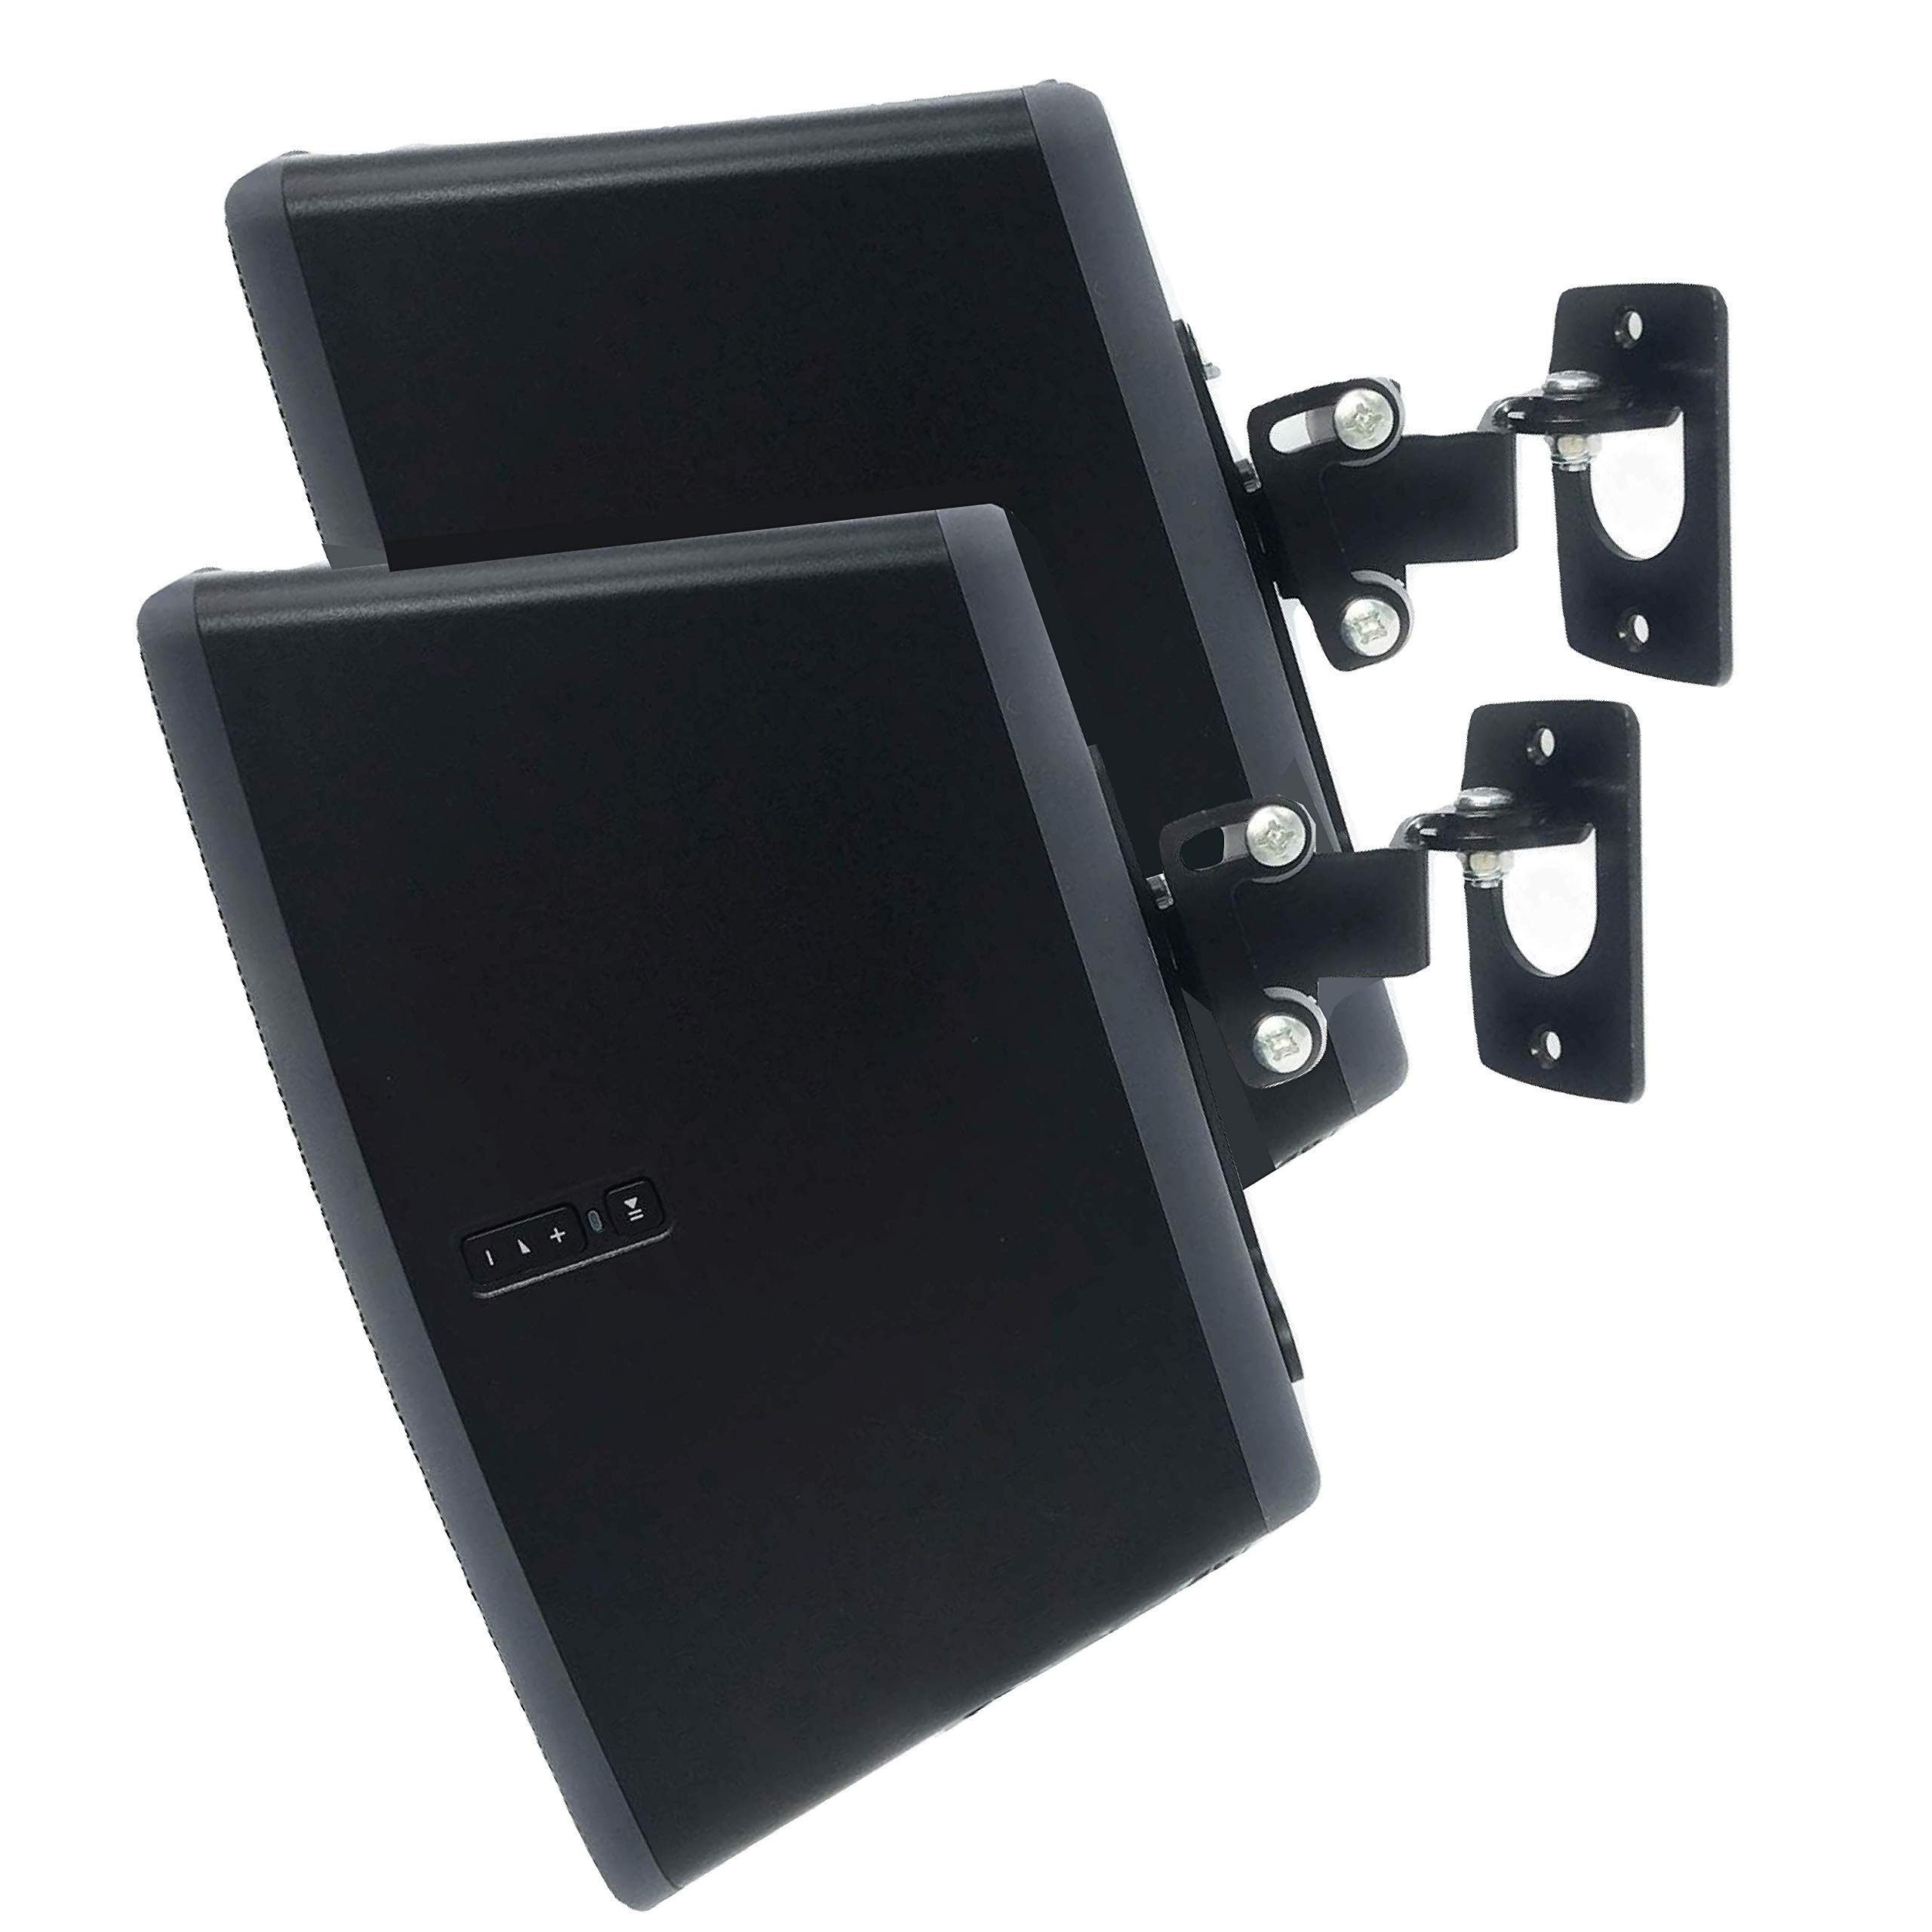 2 x Soundbass Wall Mount for Sonos Play 3, Twin Pack, Black, Adjustable Swivel & Tilt Mechanism, 2 Brackets for Play:3 Speaker with Mounting Accessories